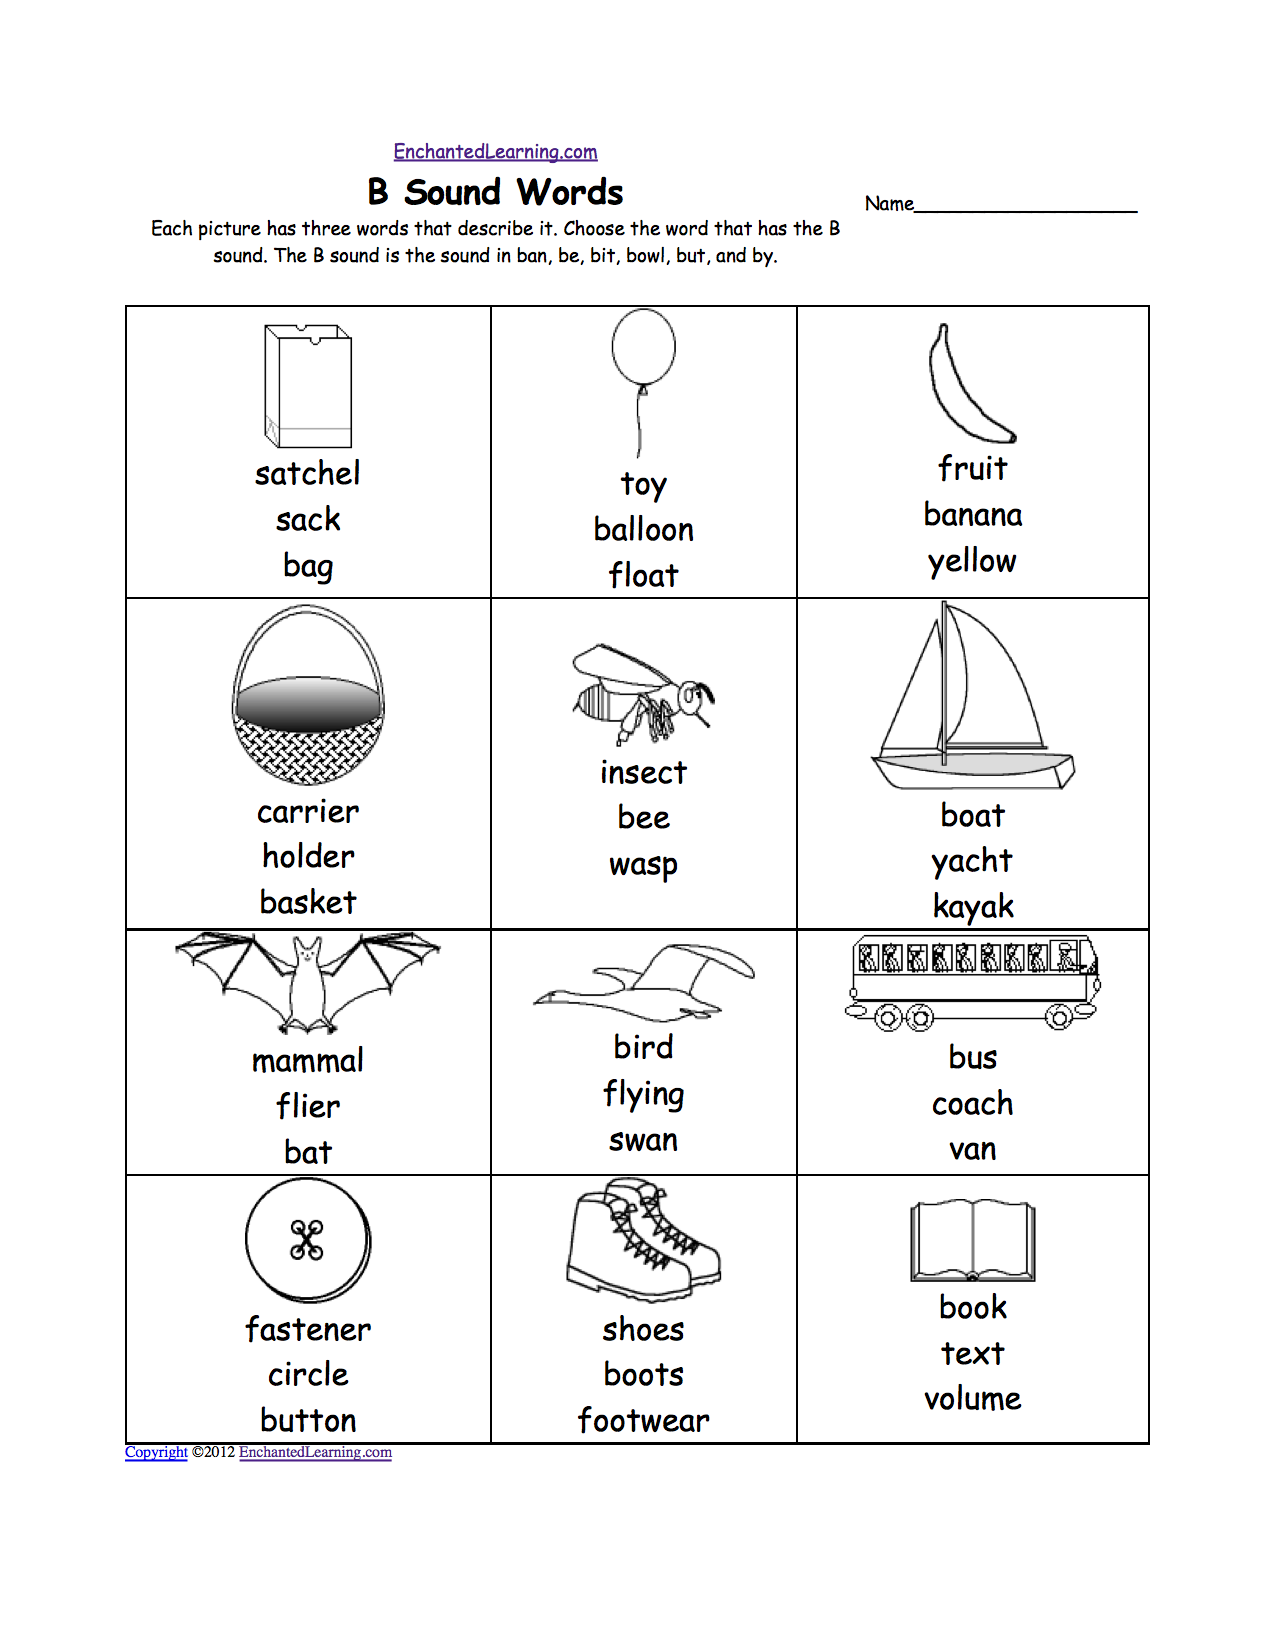 Aldiablosus  Unusual Phonics Worksheets Multiple Choice Worksheets To Print  With Engaging Quotbquot Sound Phonics Worksheet Multiple Choice Each Picture Has Three Words That Describe It Choose The Word That Has A Quotbquot Sound The Quotbquot Sound Is The Sound  With Astounding Fossil Fuel Worksheet Also The Worksheet Place In Addition Dependent And Independent Clause Worksheet And Analogies Worksheets Middle School As Well As Excel Reference Worksheet Additionally Halloween Math Worksheets First Grade From Enchantedlearningcom With Aldiablosus  Engaging Phonics Worksheets Multiple Choice Worksheets To Print  With Astounding Quotbquot Sound Phonics Worksheet Multiple Choice Each Picture Has Three Words That Describe It Choose The Word That Has A Quotbquot Sound The Quotbquot Sound Is The Sound  And Unusual Fossil Fuel Worksheet Also The Worksheet Place In Addition Dependent And Independent Clause Worksheet From Enchantedlearningcom